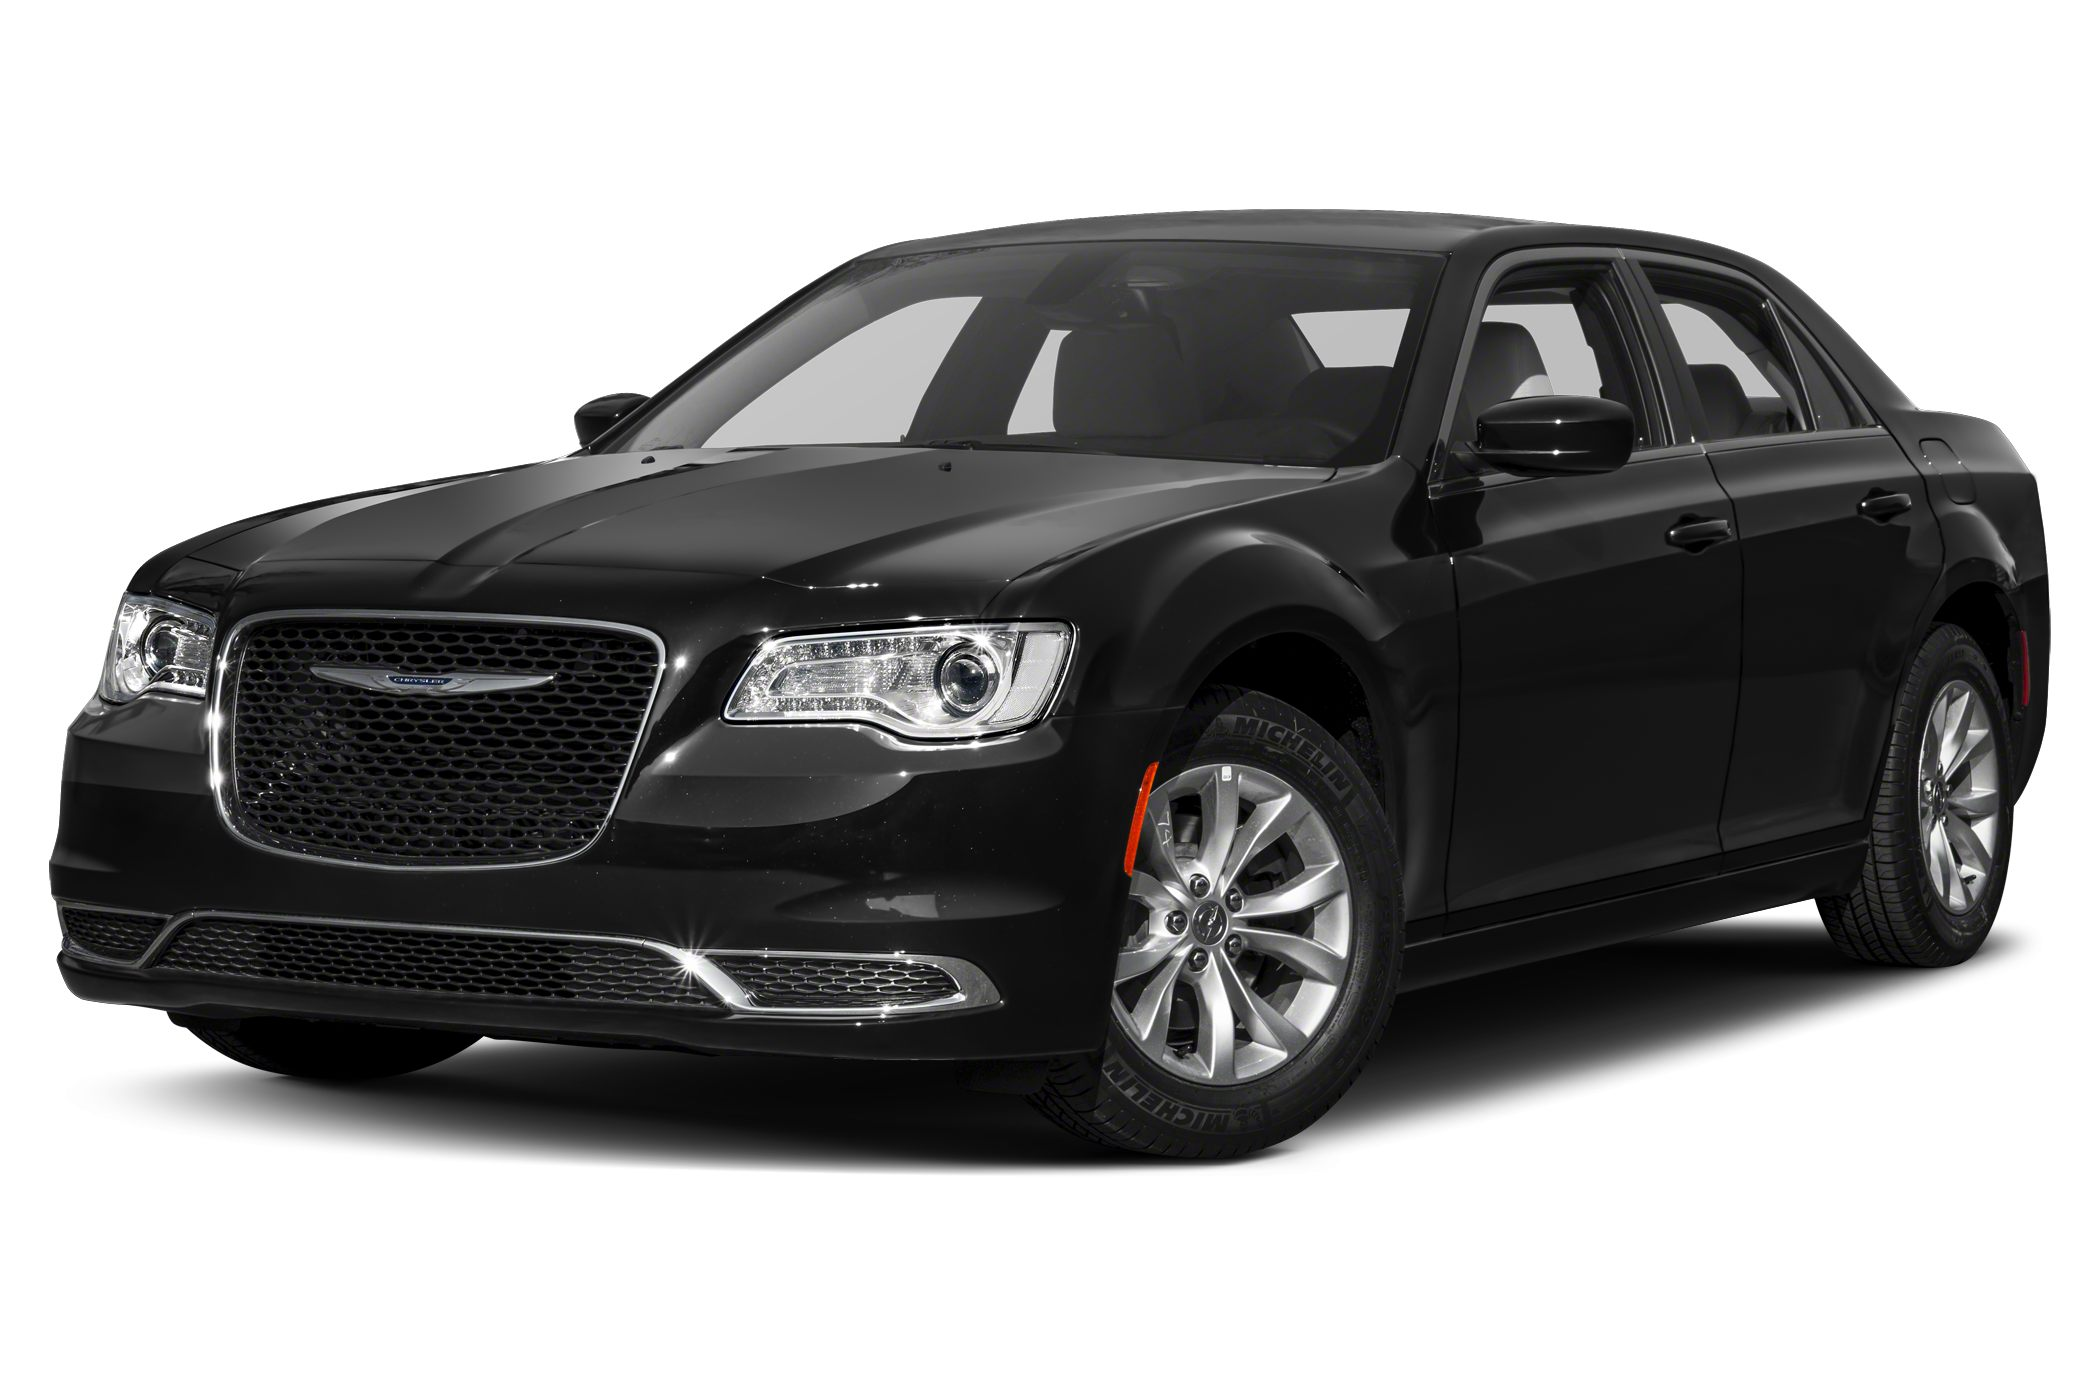 2016 Chrysler 300 Pricing And Specs